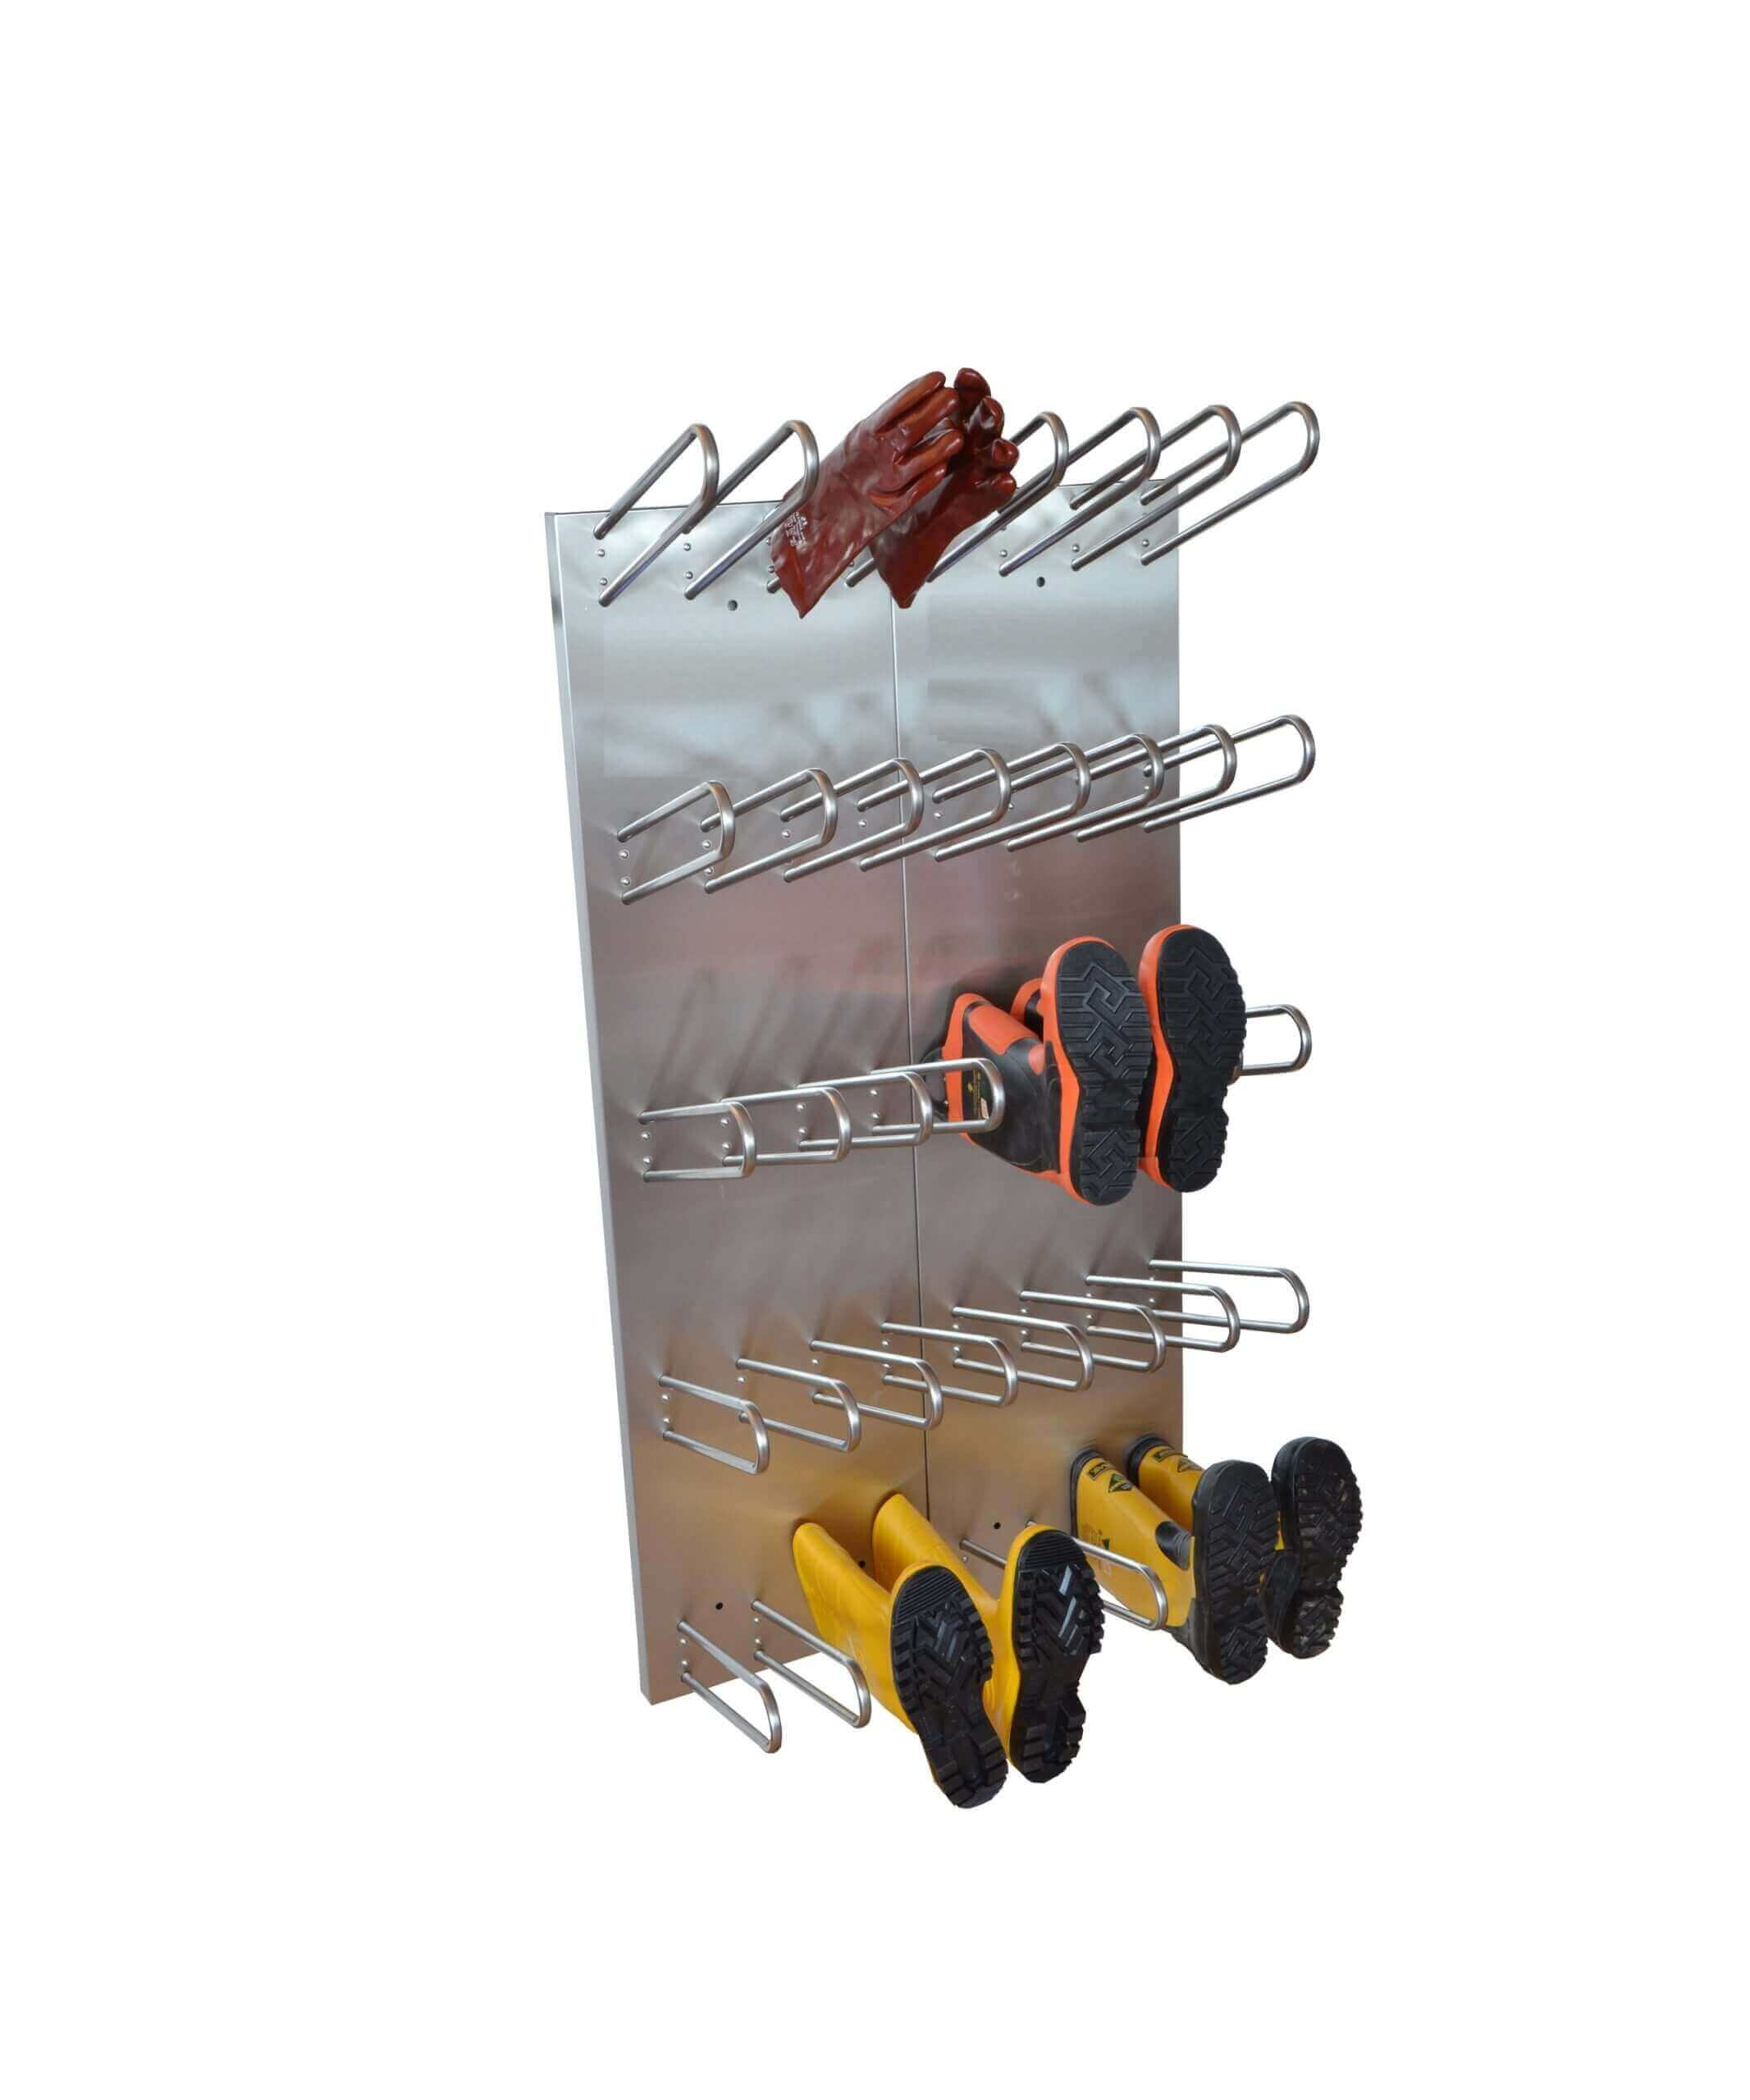 electrically heated boot and glove dryer